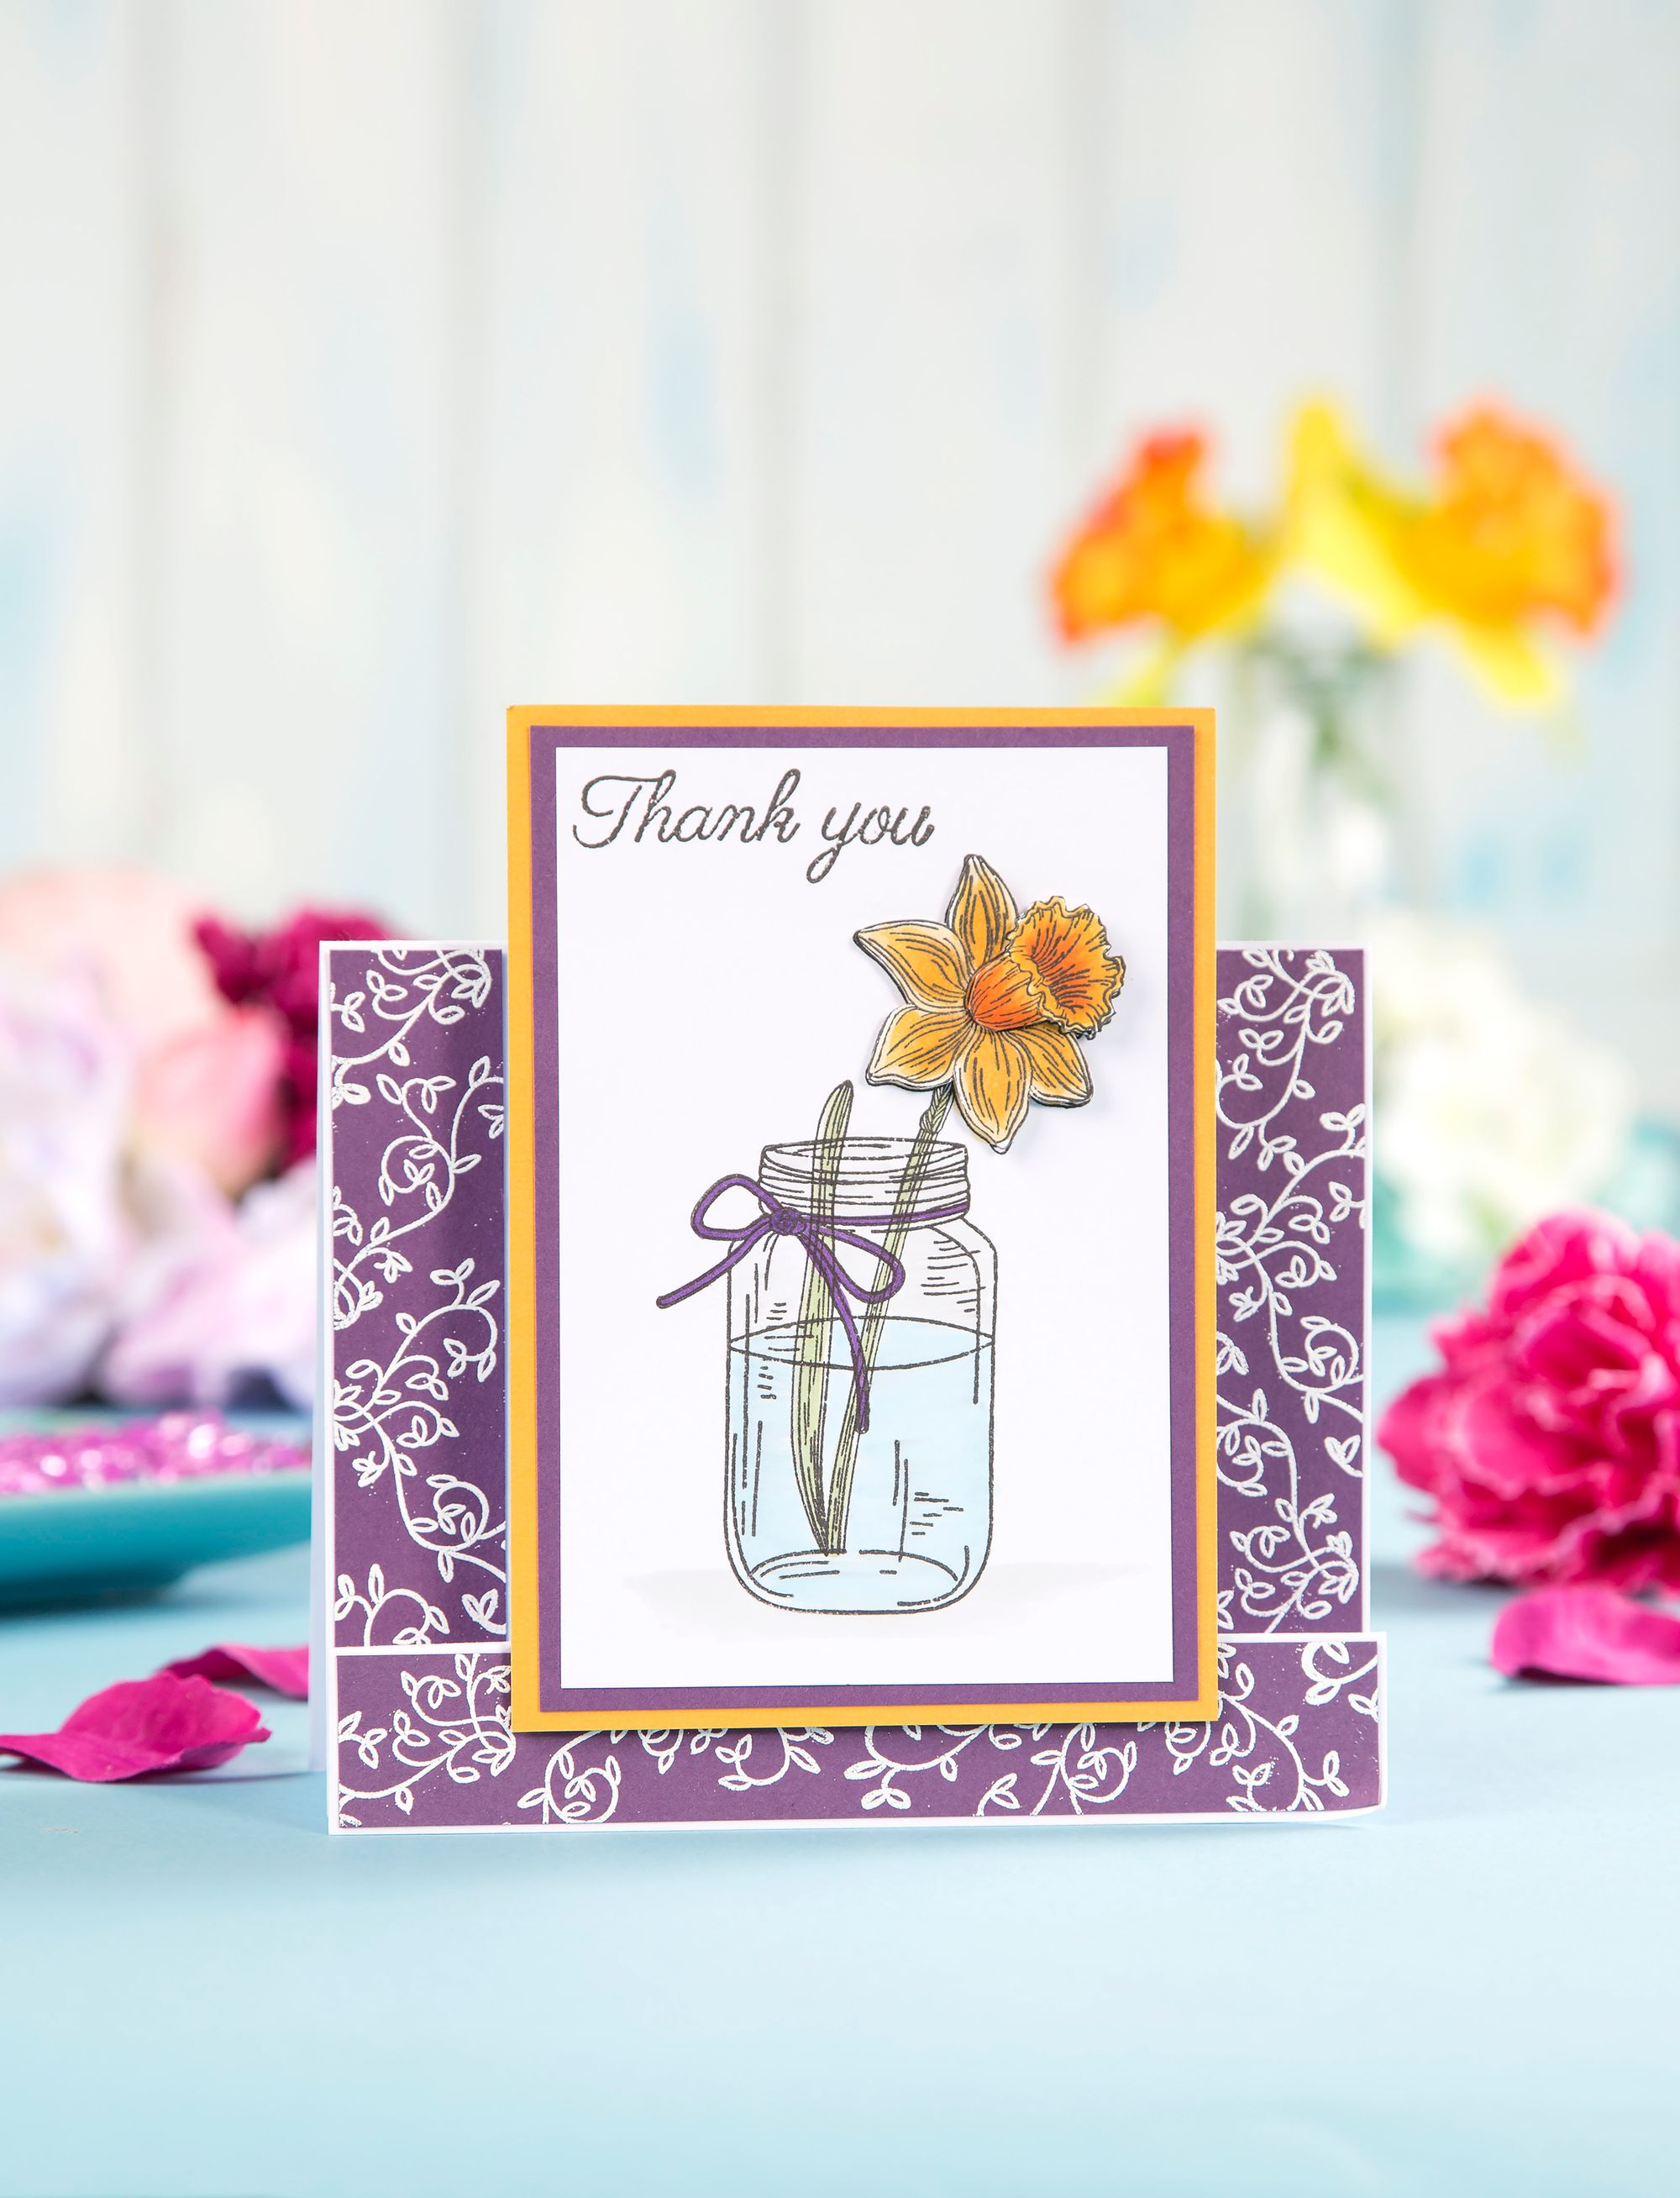 Thank You Card Made with Free Digital Stamp Set